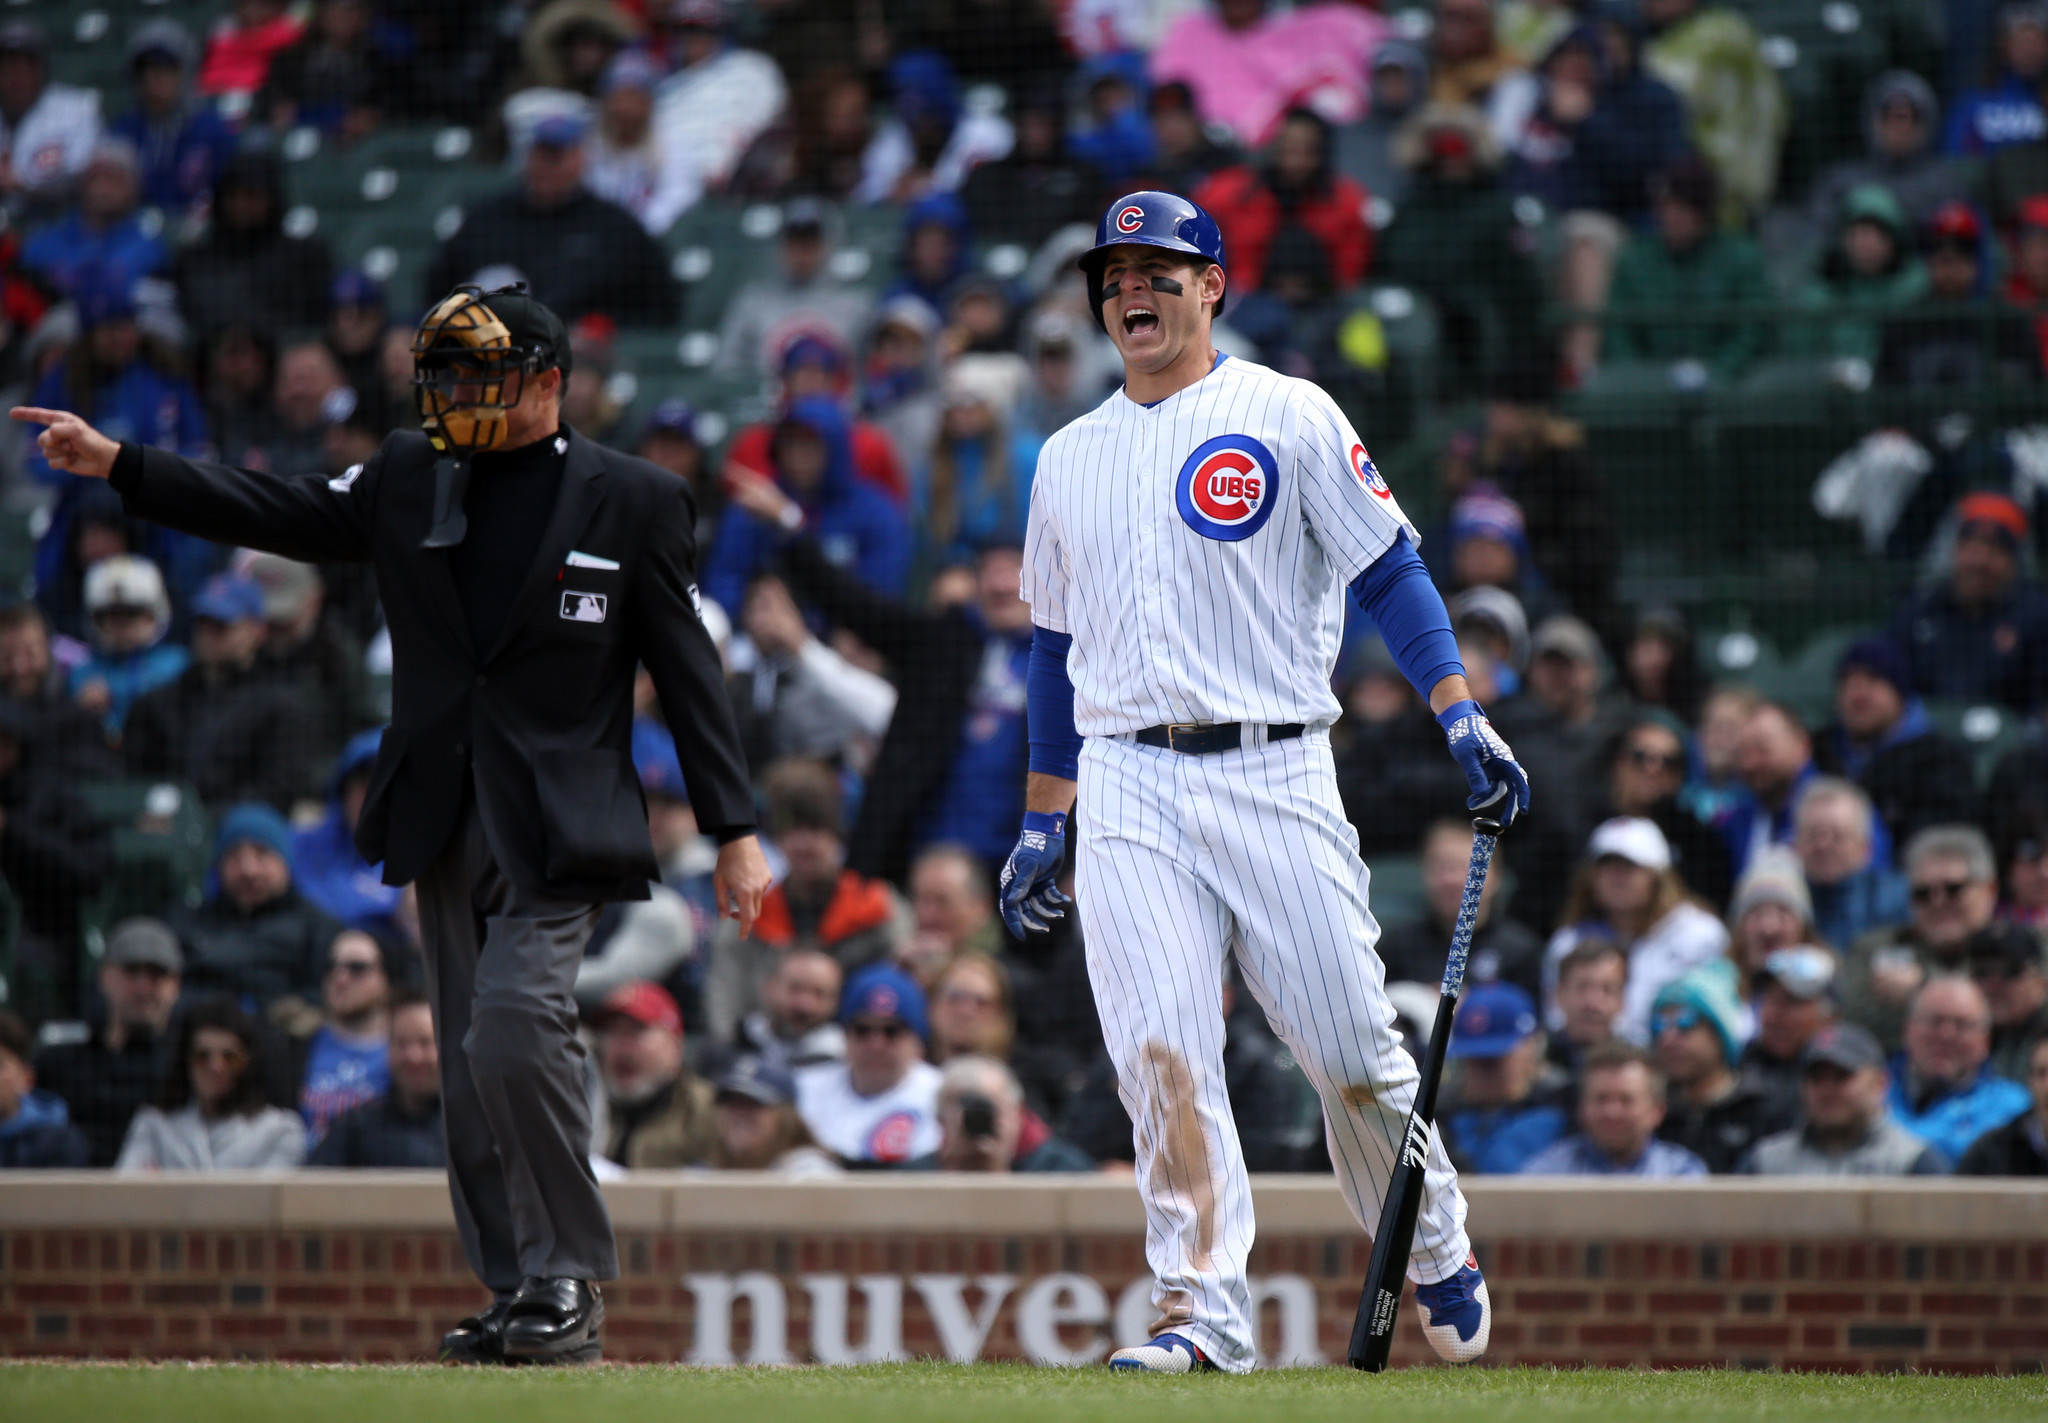 Anthony Rizzo Wallpaper Sundays College Baseball 1357137 Hd